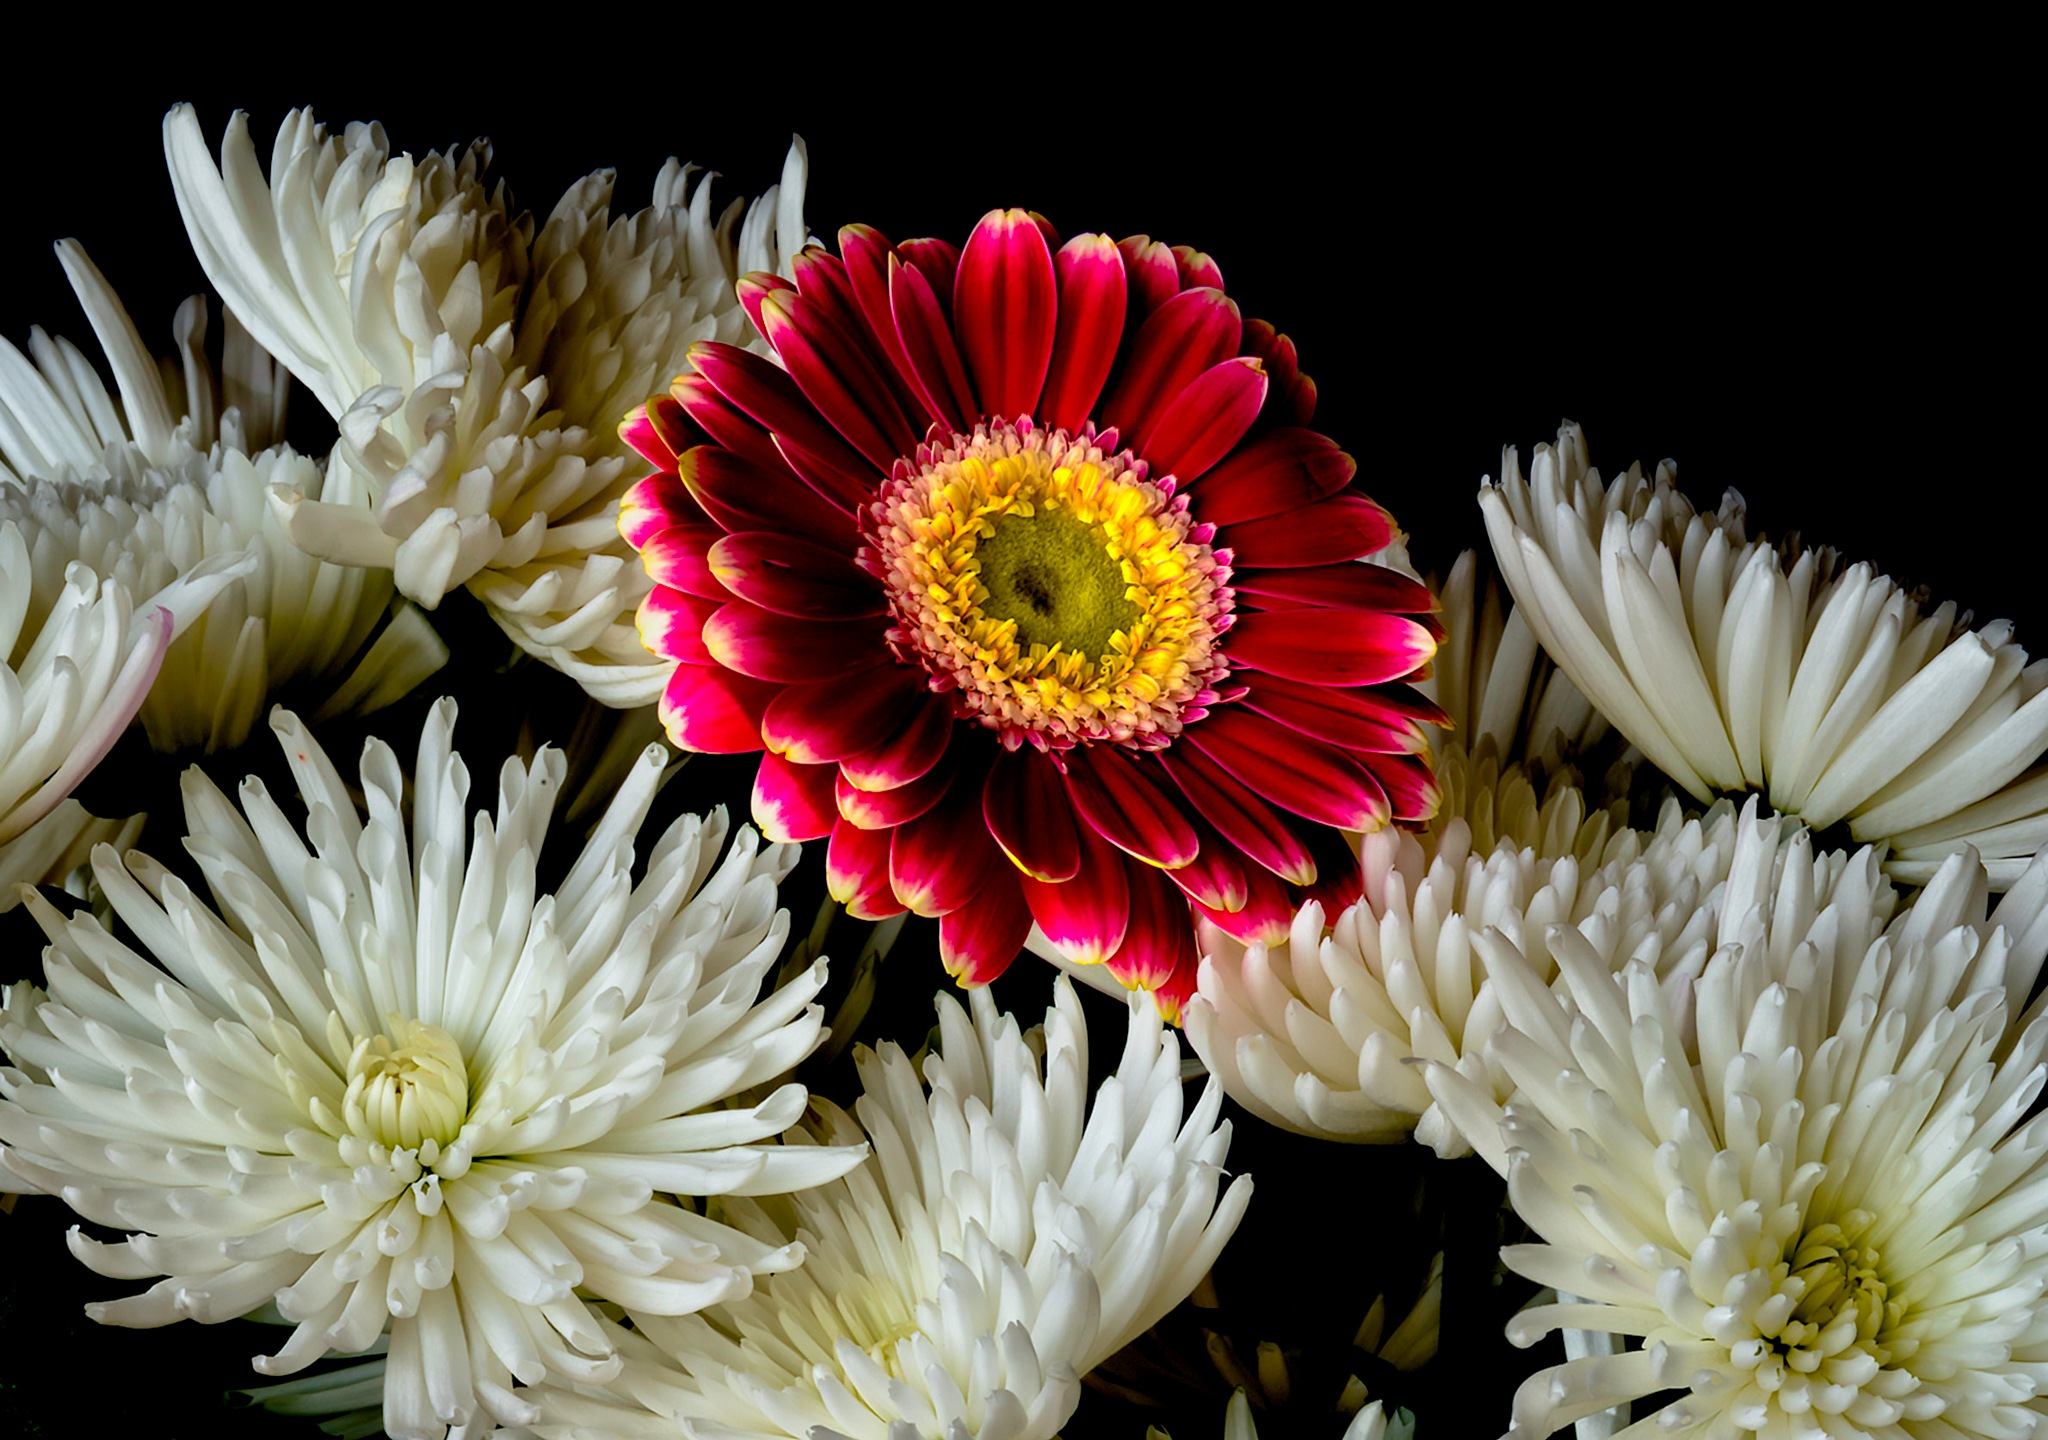 Red Gerbera and White Chrysanthemums by John Roberts